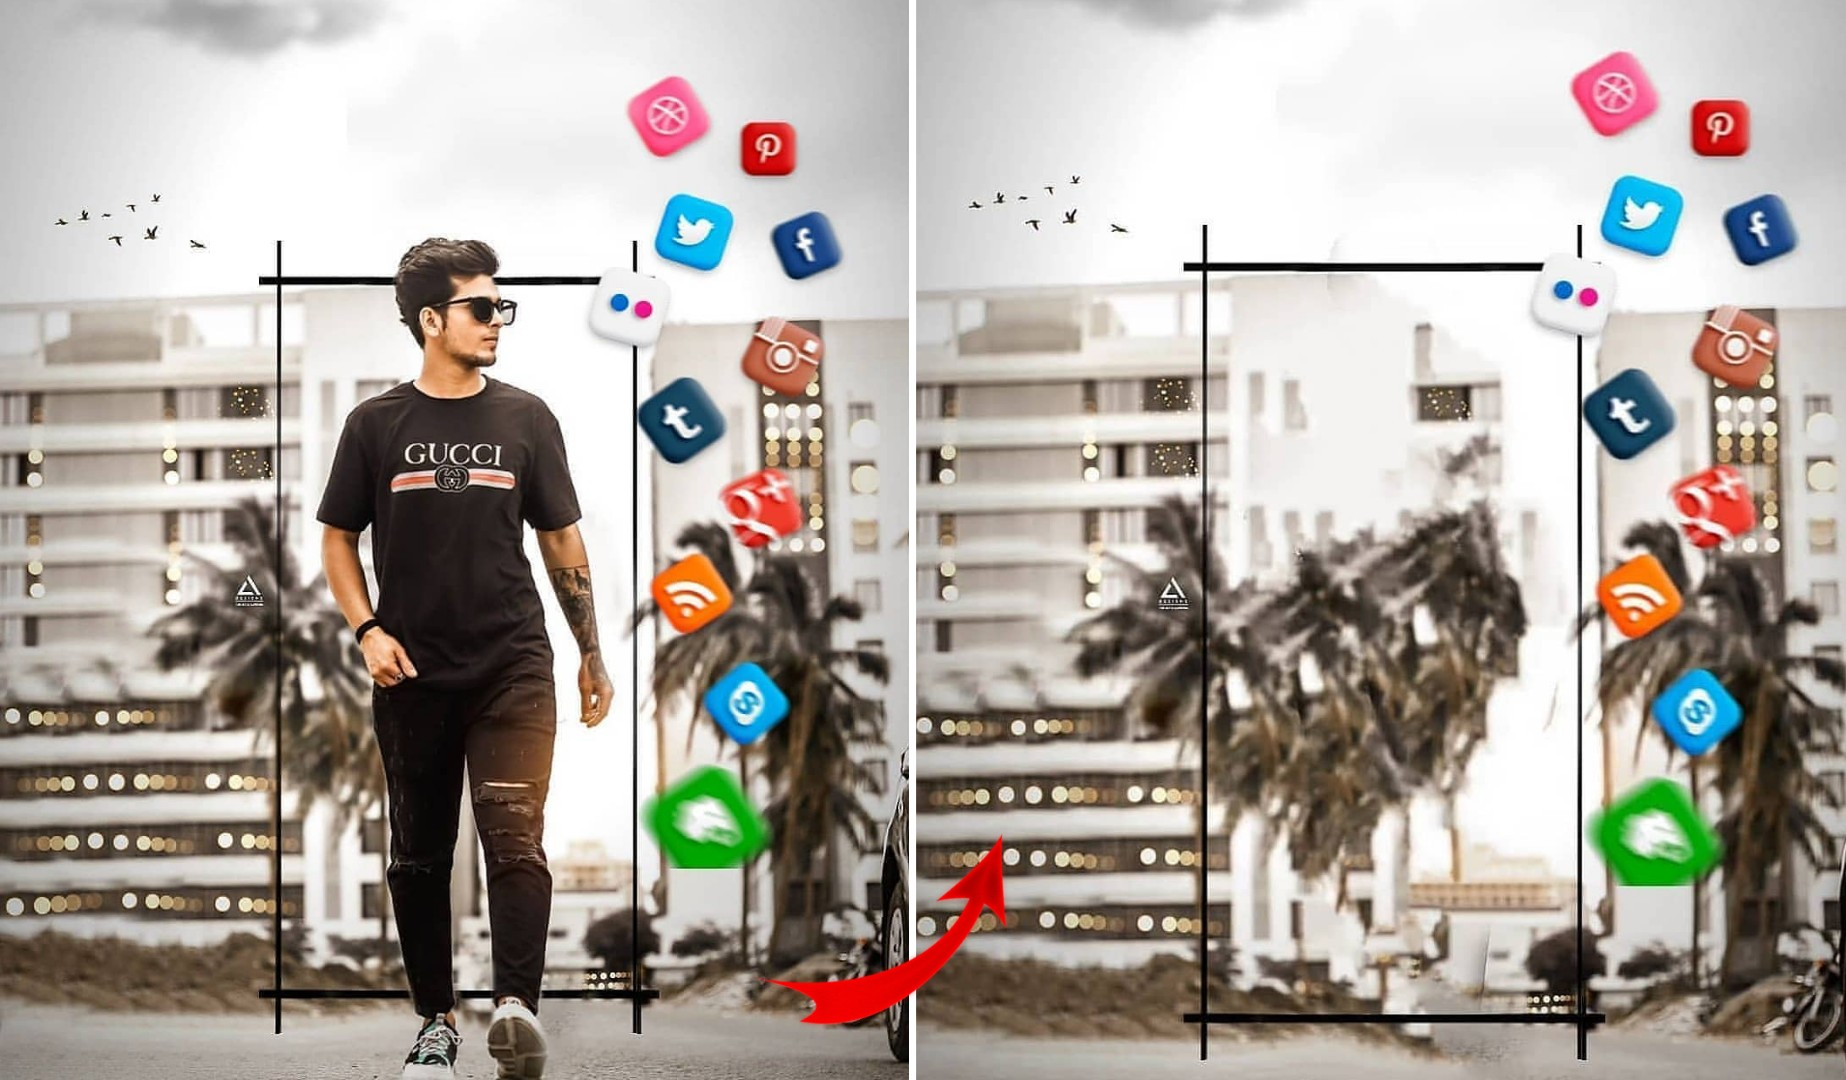 Top 10 instagram Hd background